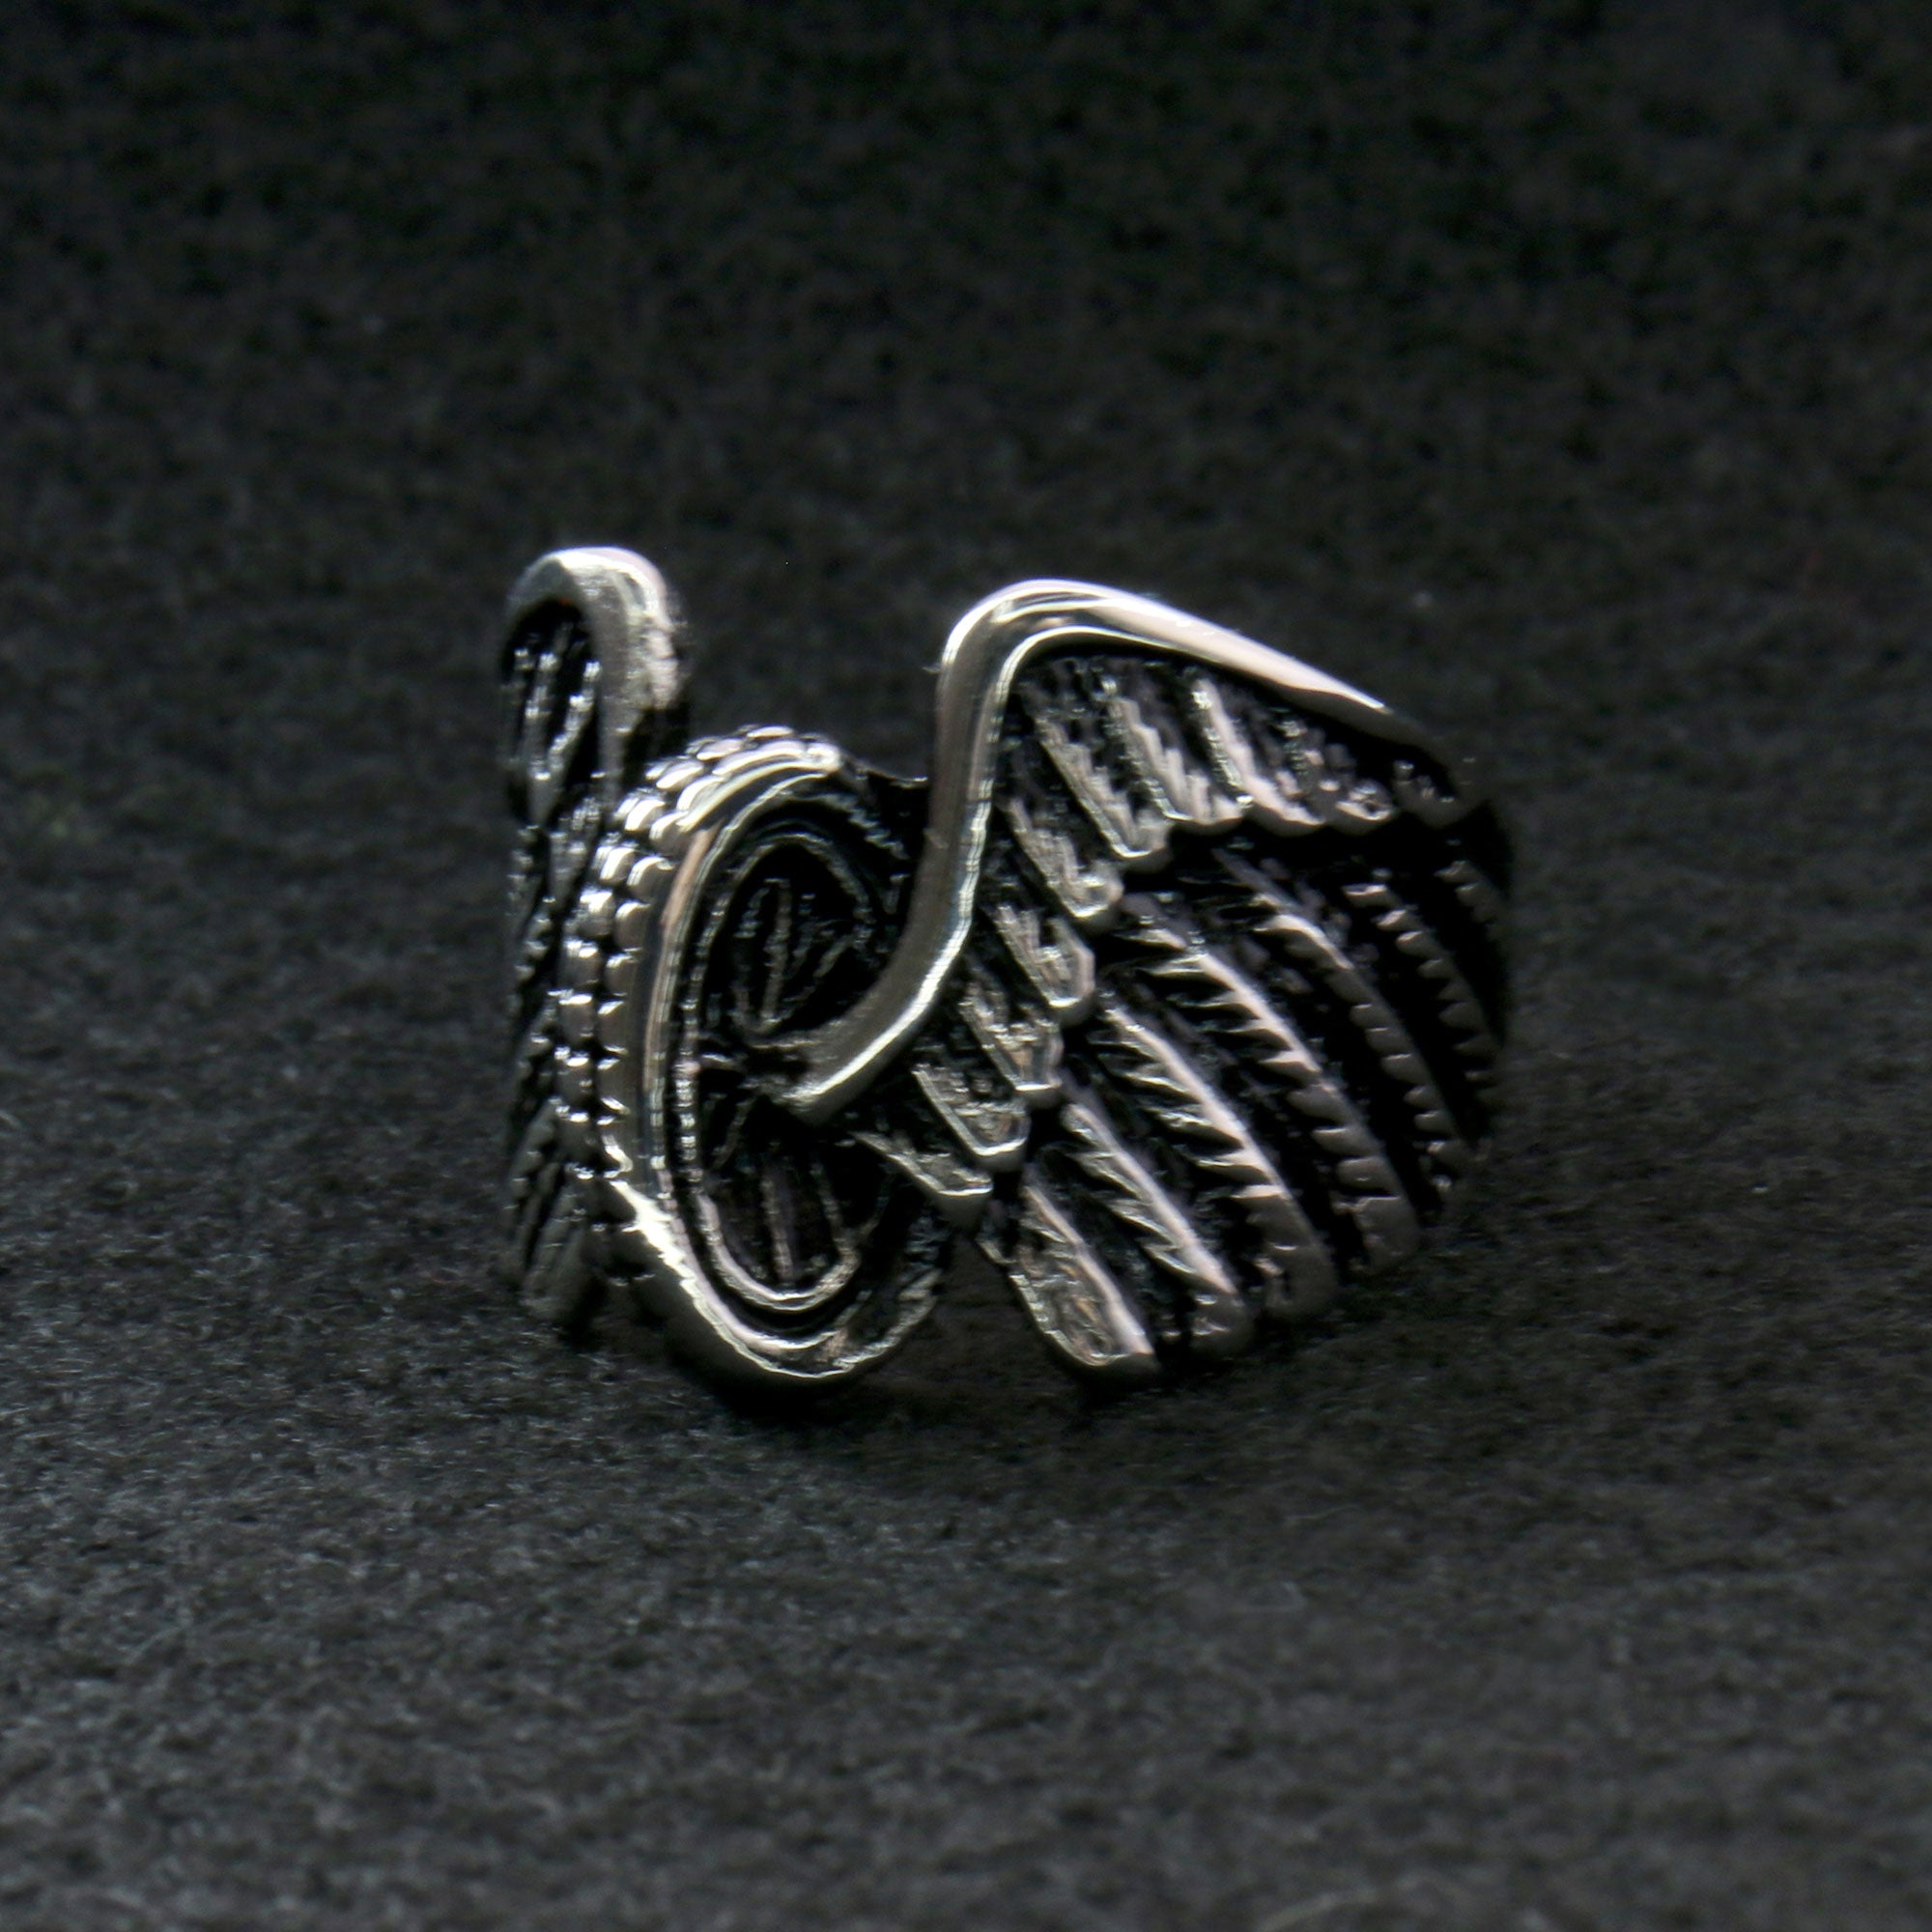 Hot Leathers Wings Wheel Ring